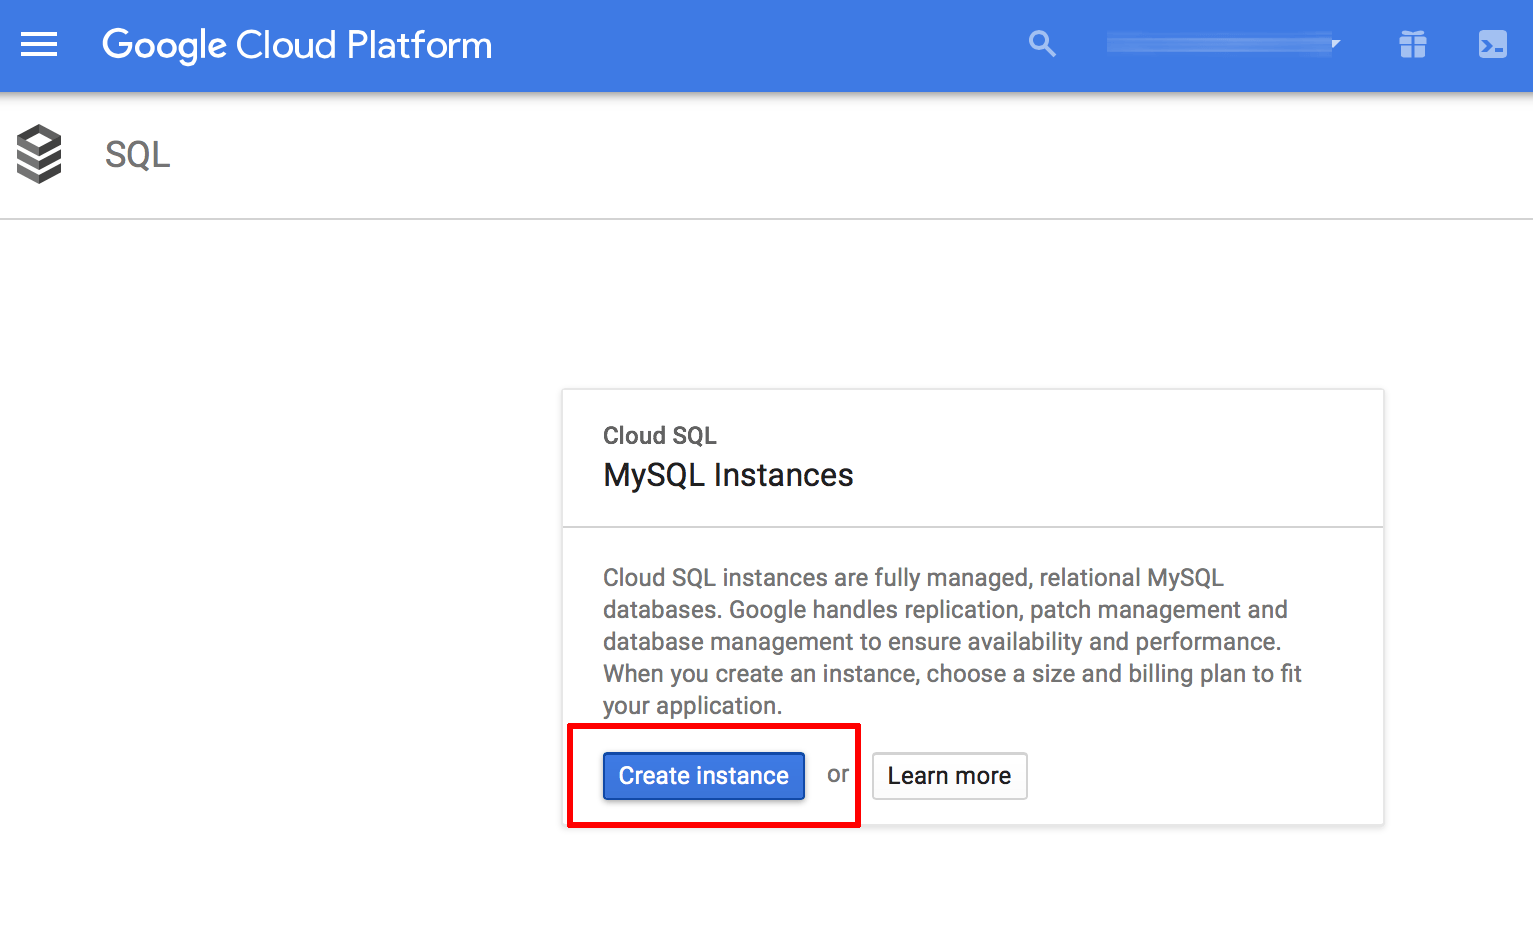 Migrate Your Application Database to Google Cloud SQL